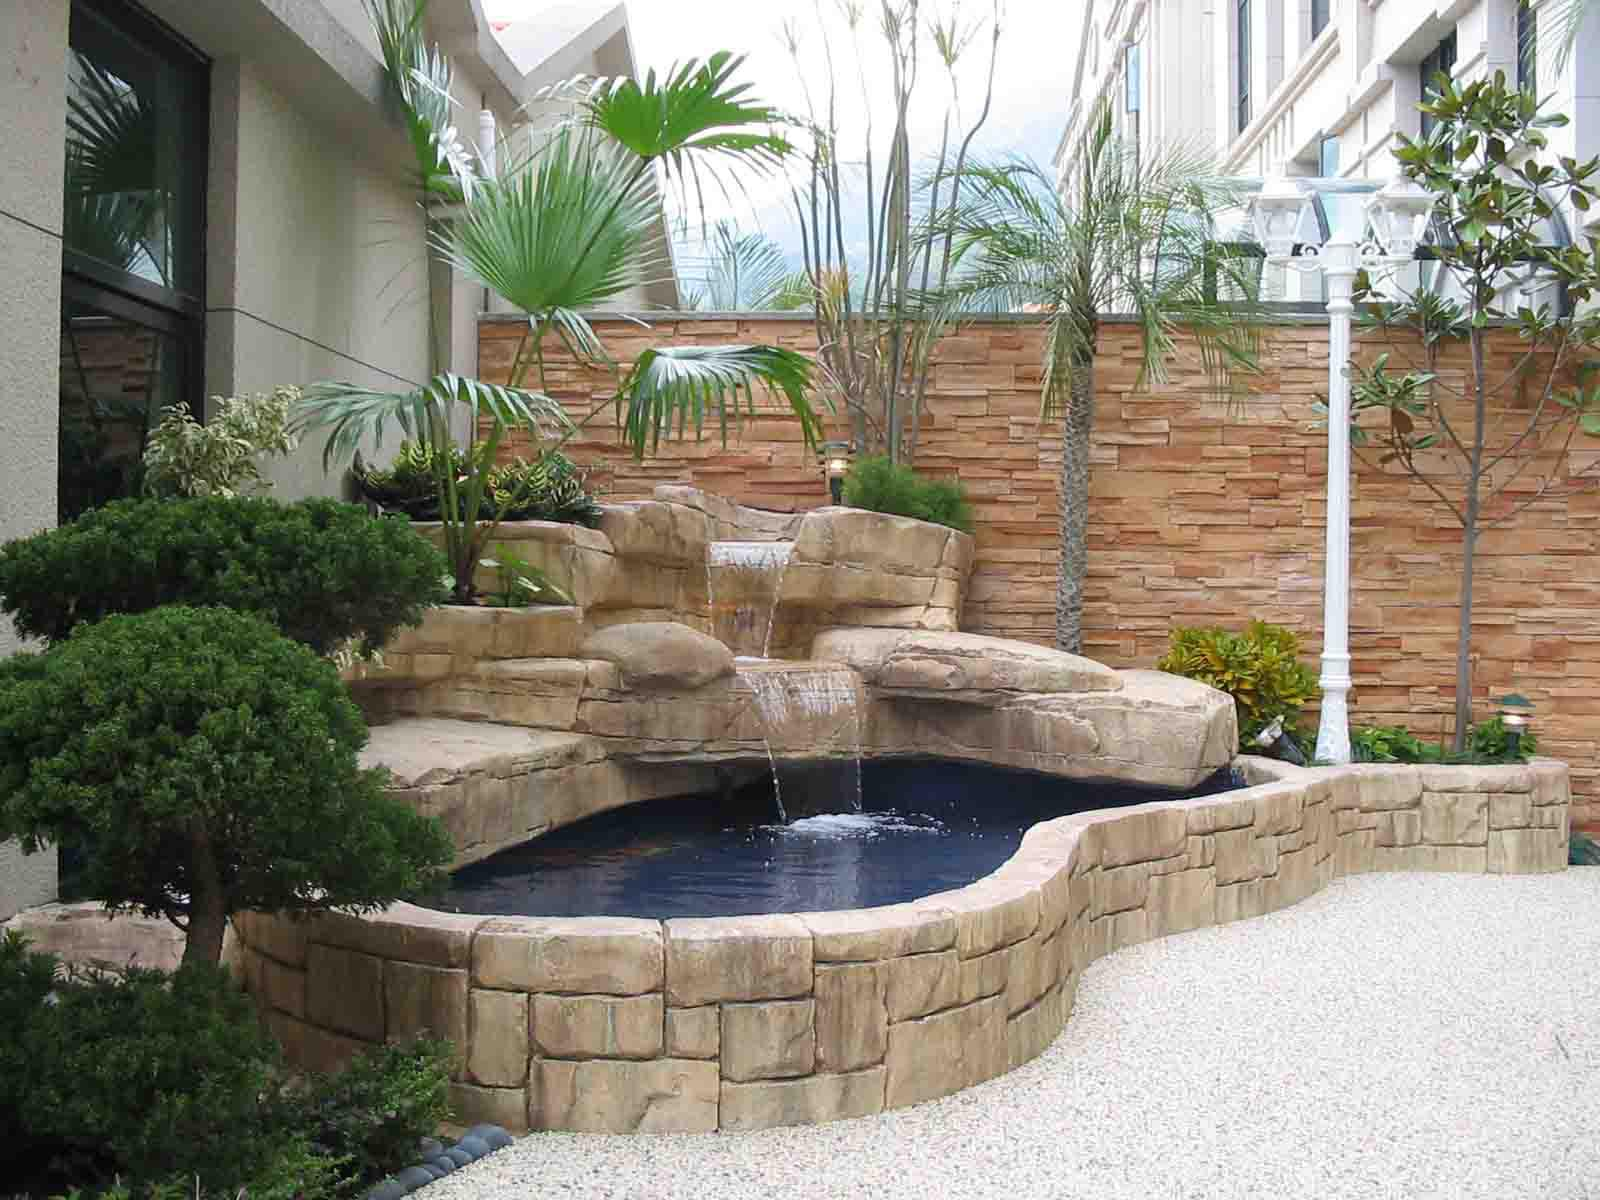 Fish pond garden design backyard design ideas for Garden with pond